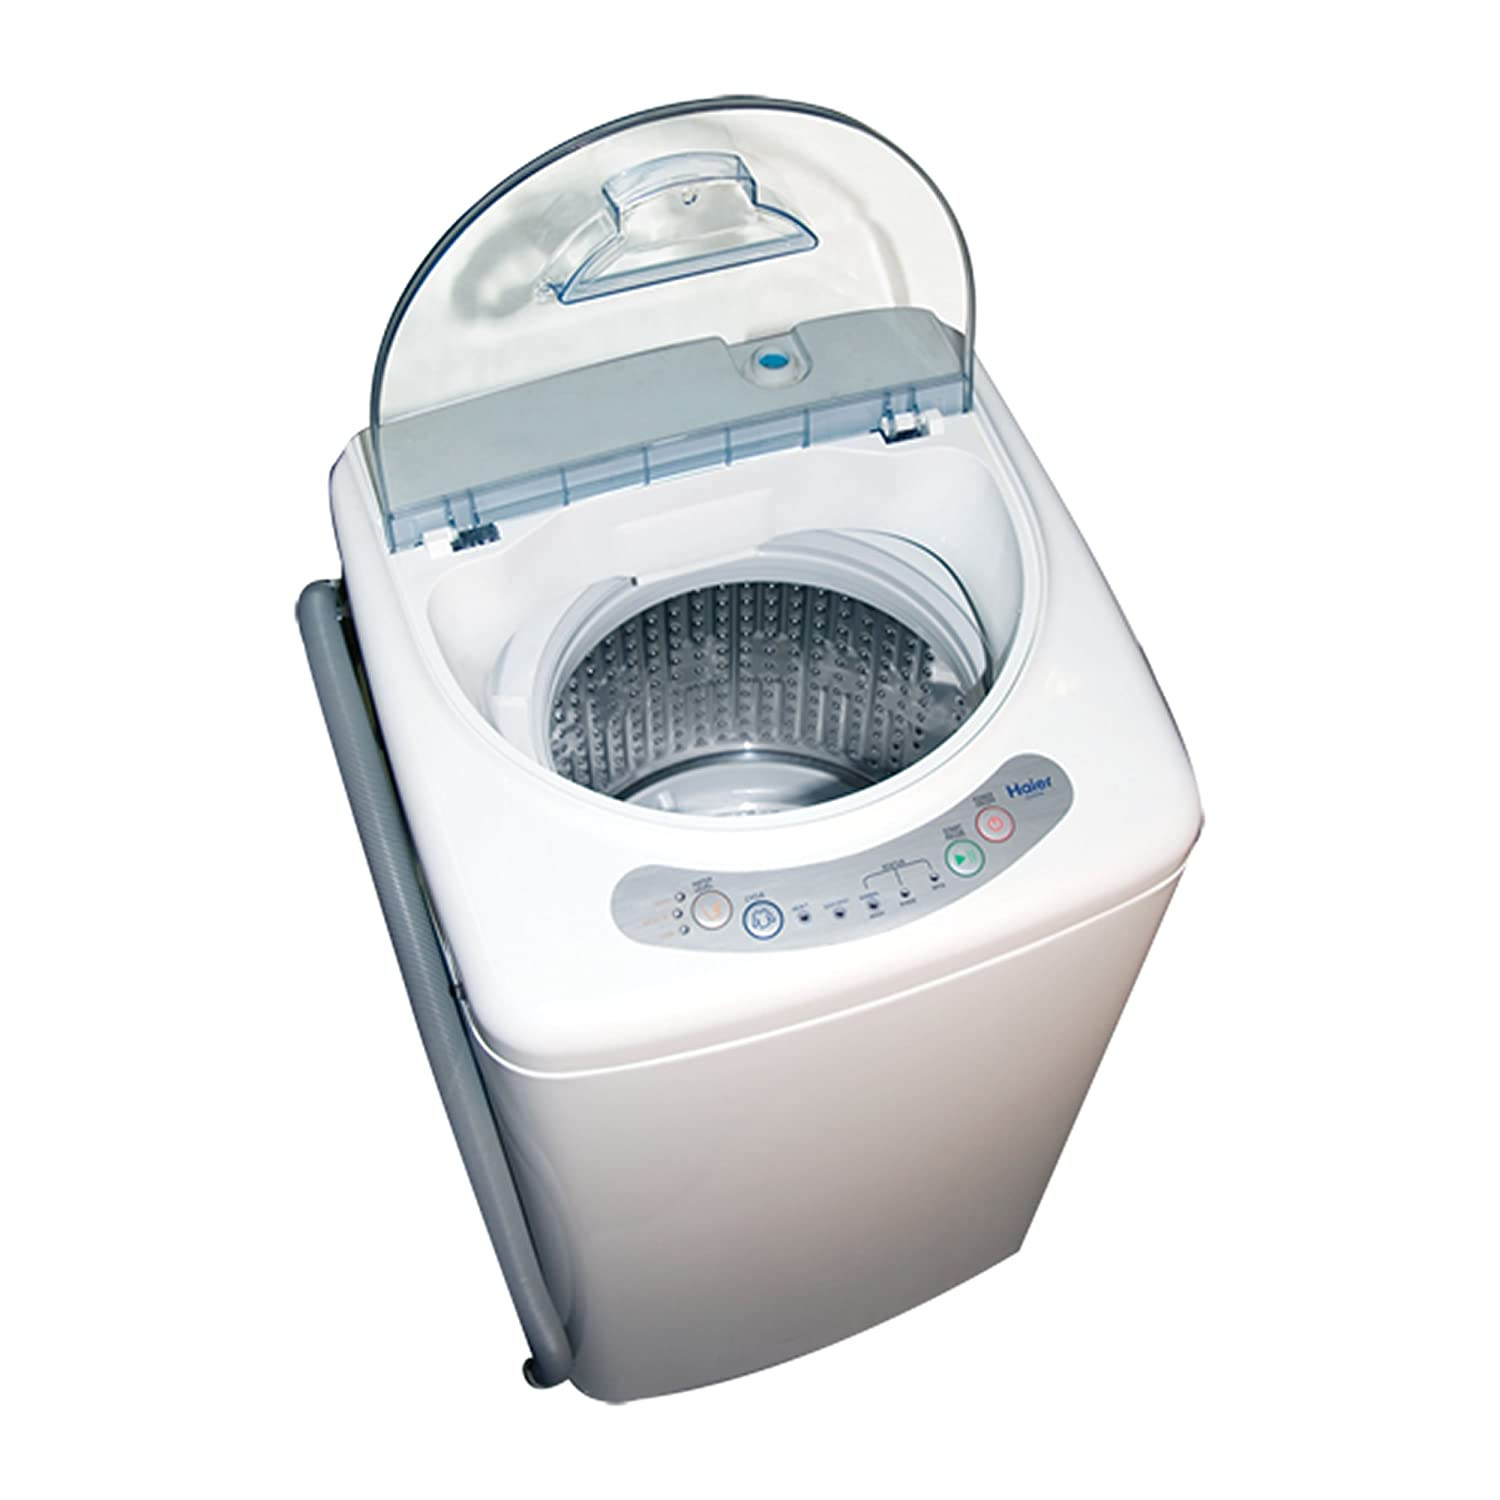 A Mini Washing Machine For Your Mini Living Space